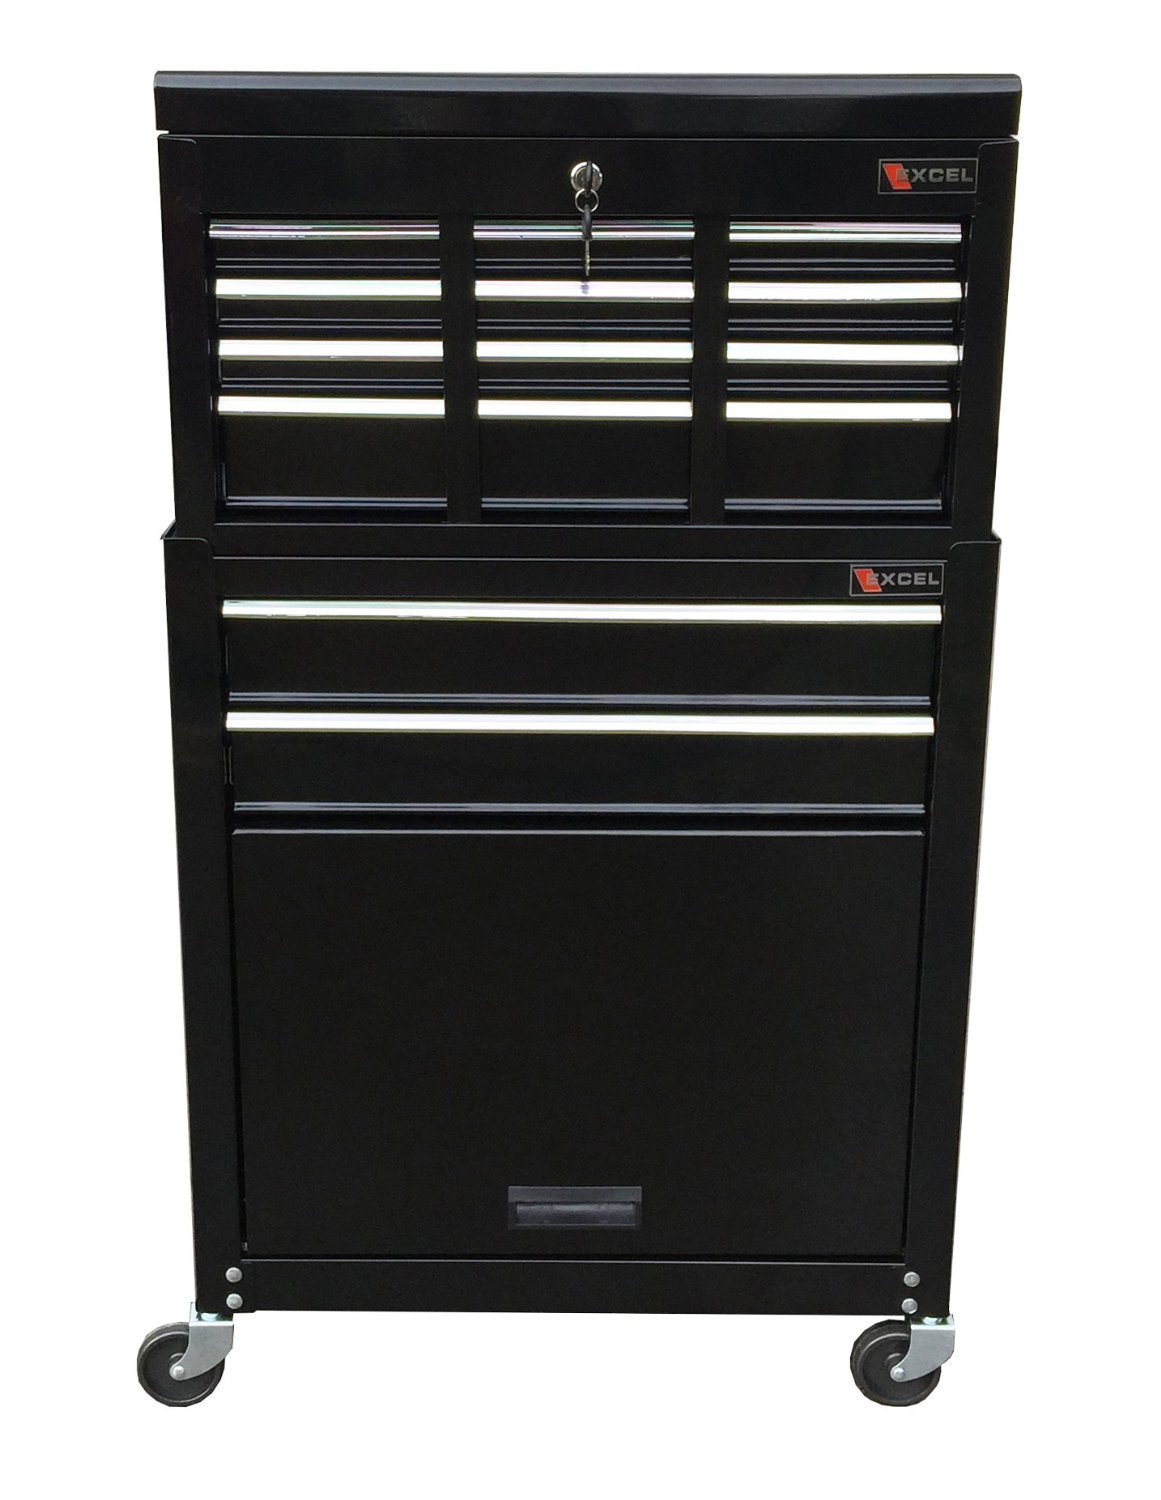 Professional Mechanics Rolling Tool Chest With 8 Drawers- Durable Heavy Duty Ball Bearing Sliding Drawers Easy Open With Security Lock- Perfect Tool Organizer Storage- Home Garage Mechanic Black